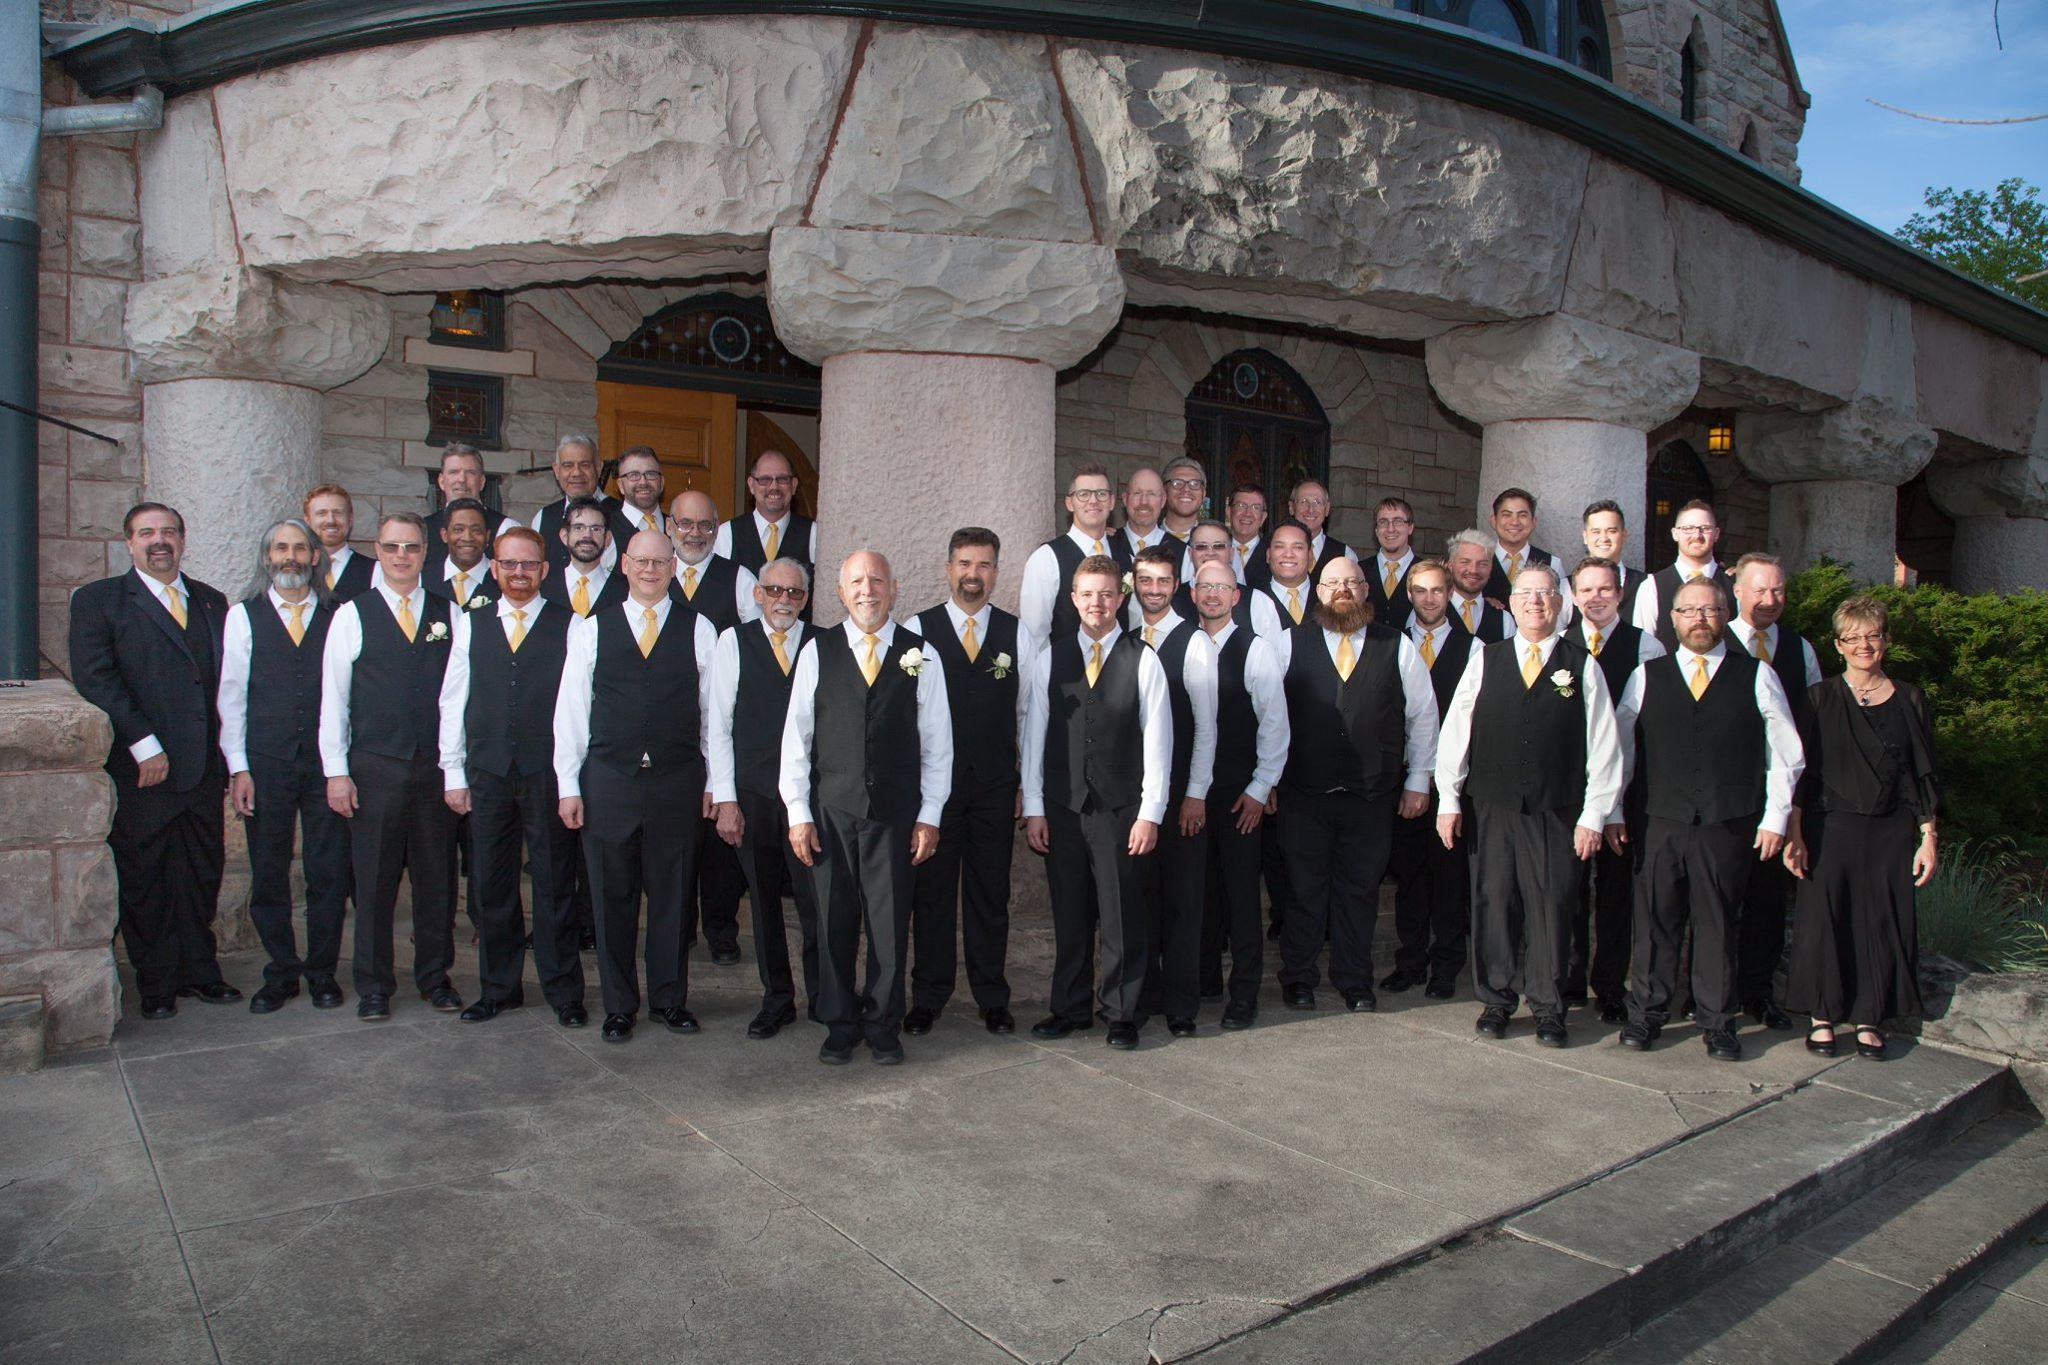 2016 photo of the Out Loud Colorado Springs Men's Chorus